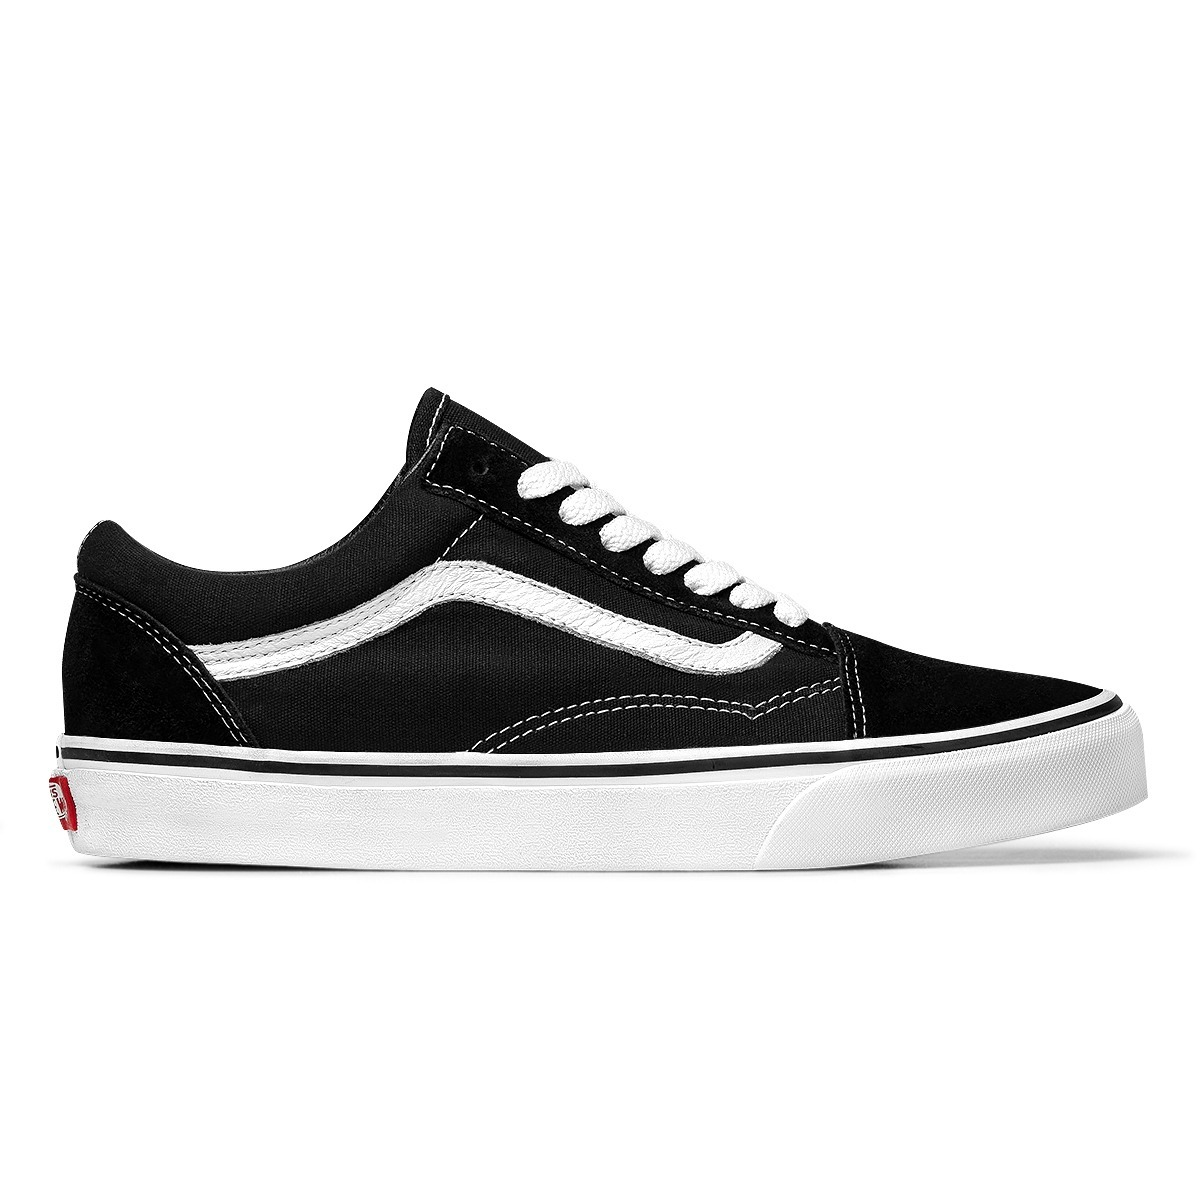 67fc00a3faad4 black friday 2018 tenis vans skate  unissex 70% off. Carregando zoom.